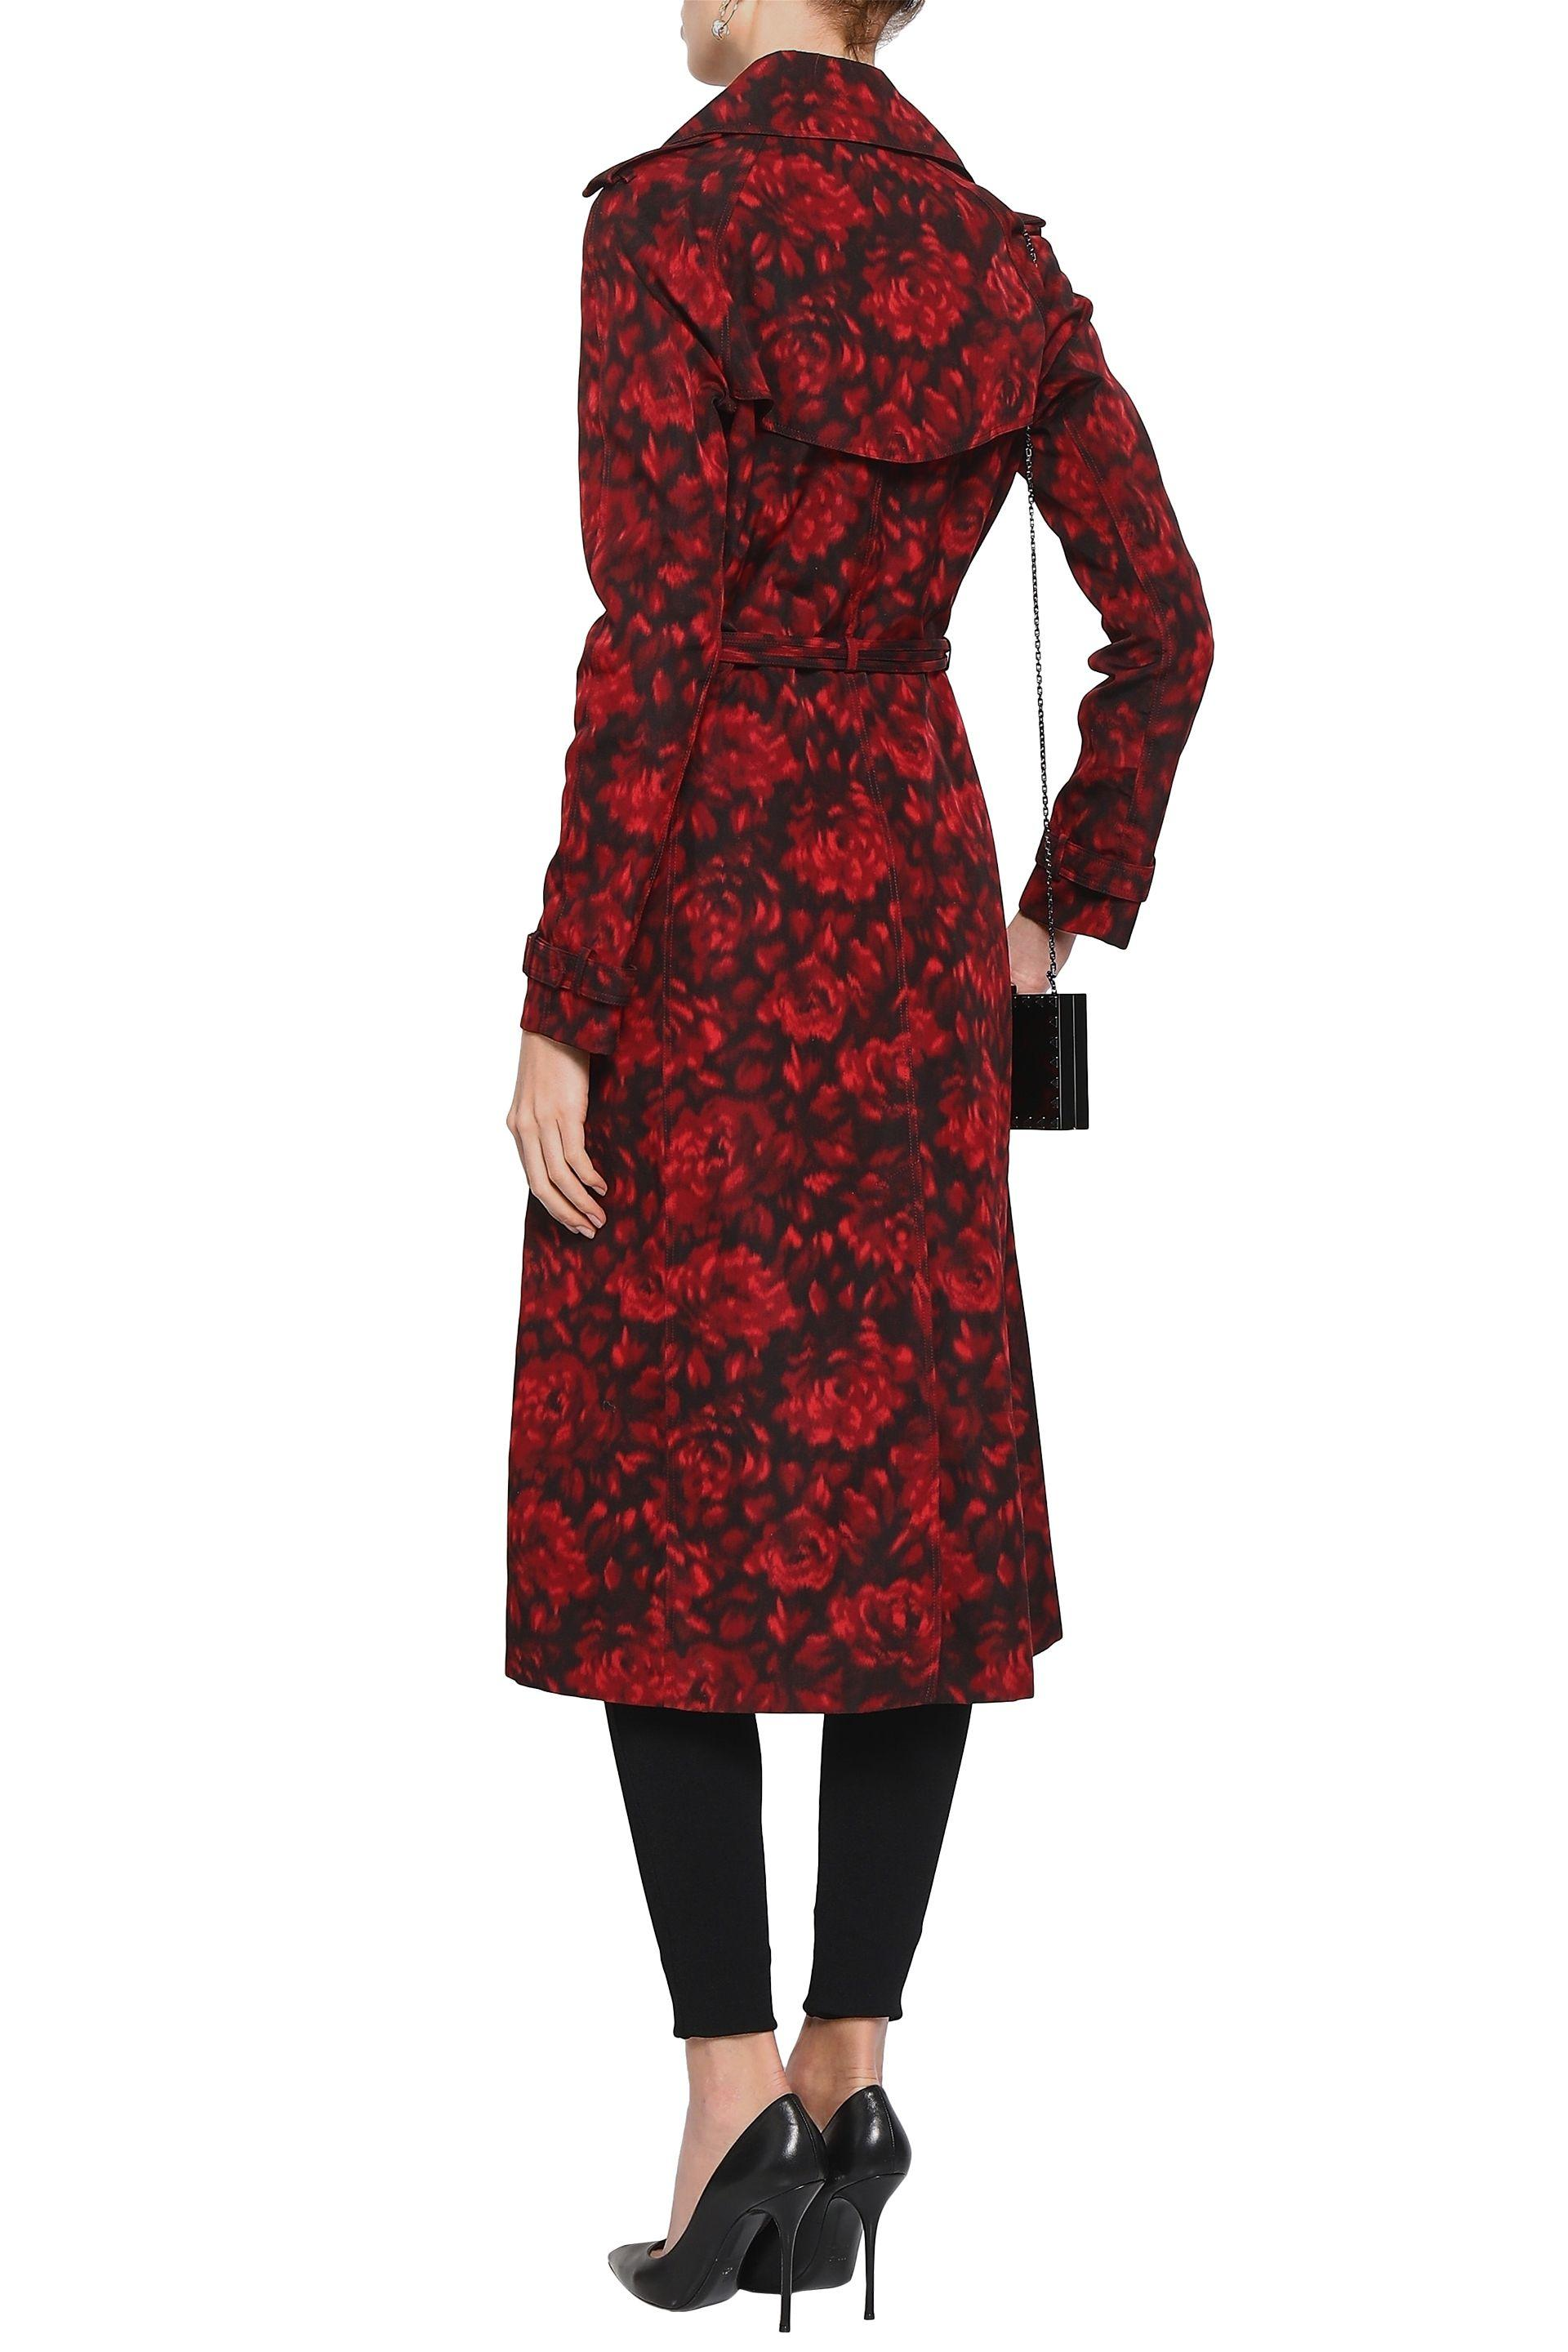 b5f2079624c Valentino - Red Woman Belted Printed Cotton And Silk-blend Trench Coat  Crimson - Lyst. View fullscreen